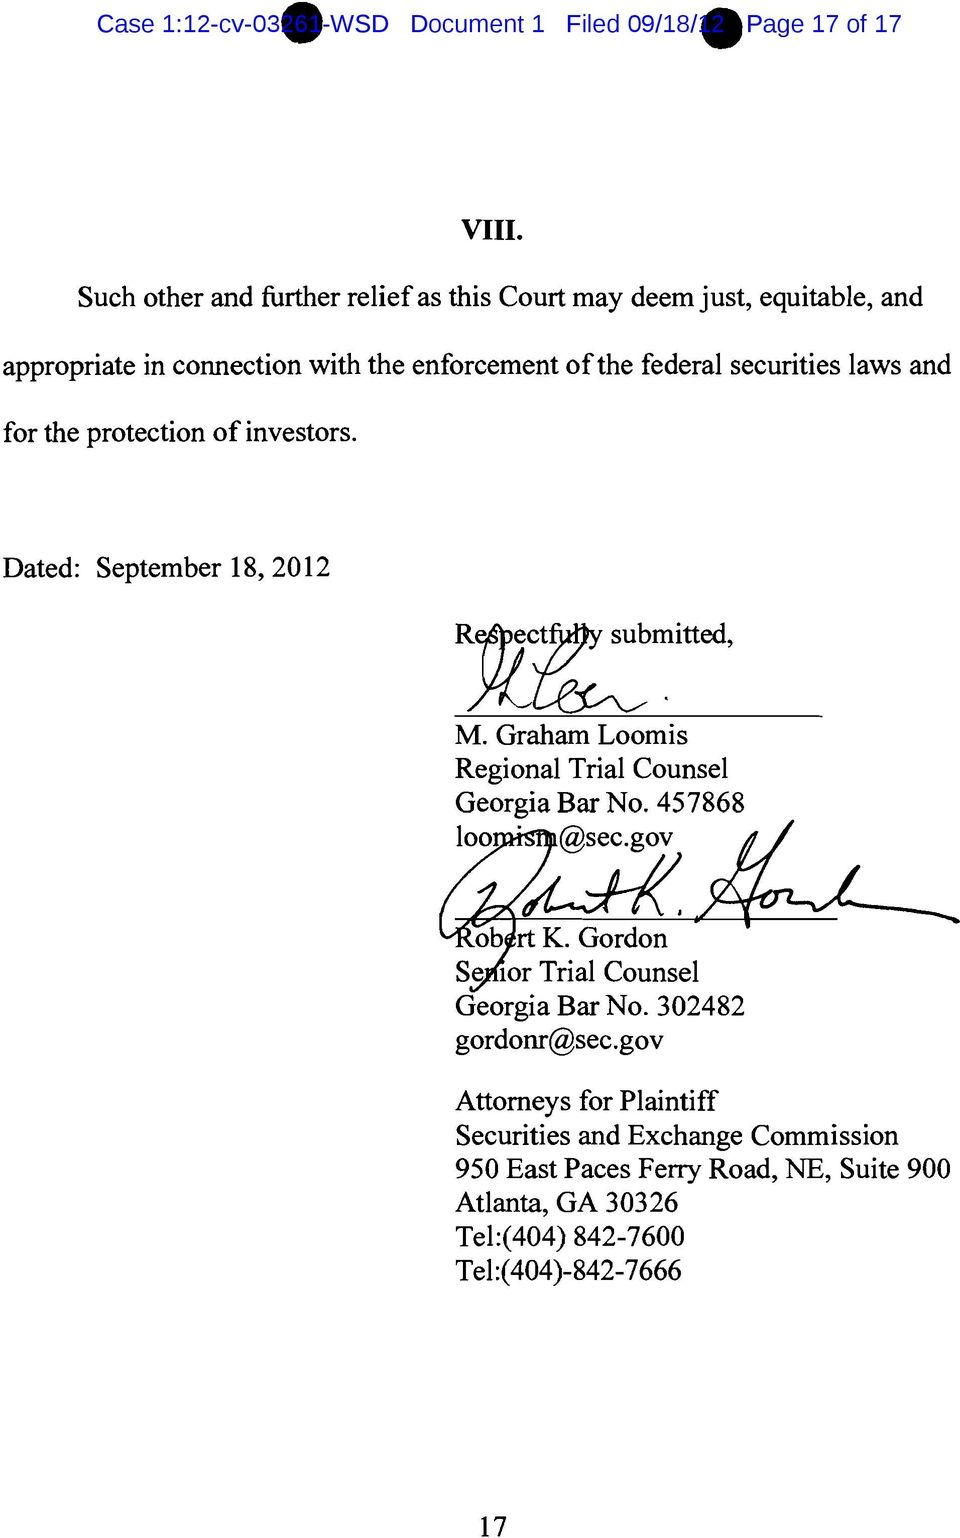 laws and for the protection ofinvestors. Dated: September 18,2012 M. Graham Loomis Regional Trial Counsel Georgia Bar No. 457868 100. @sec.